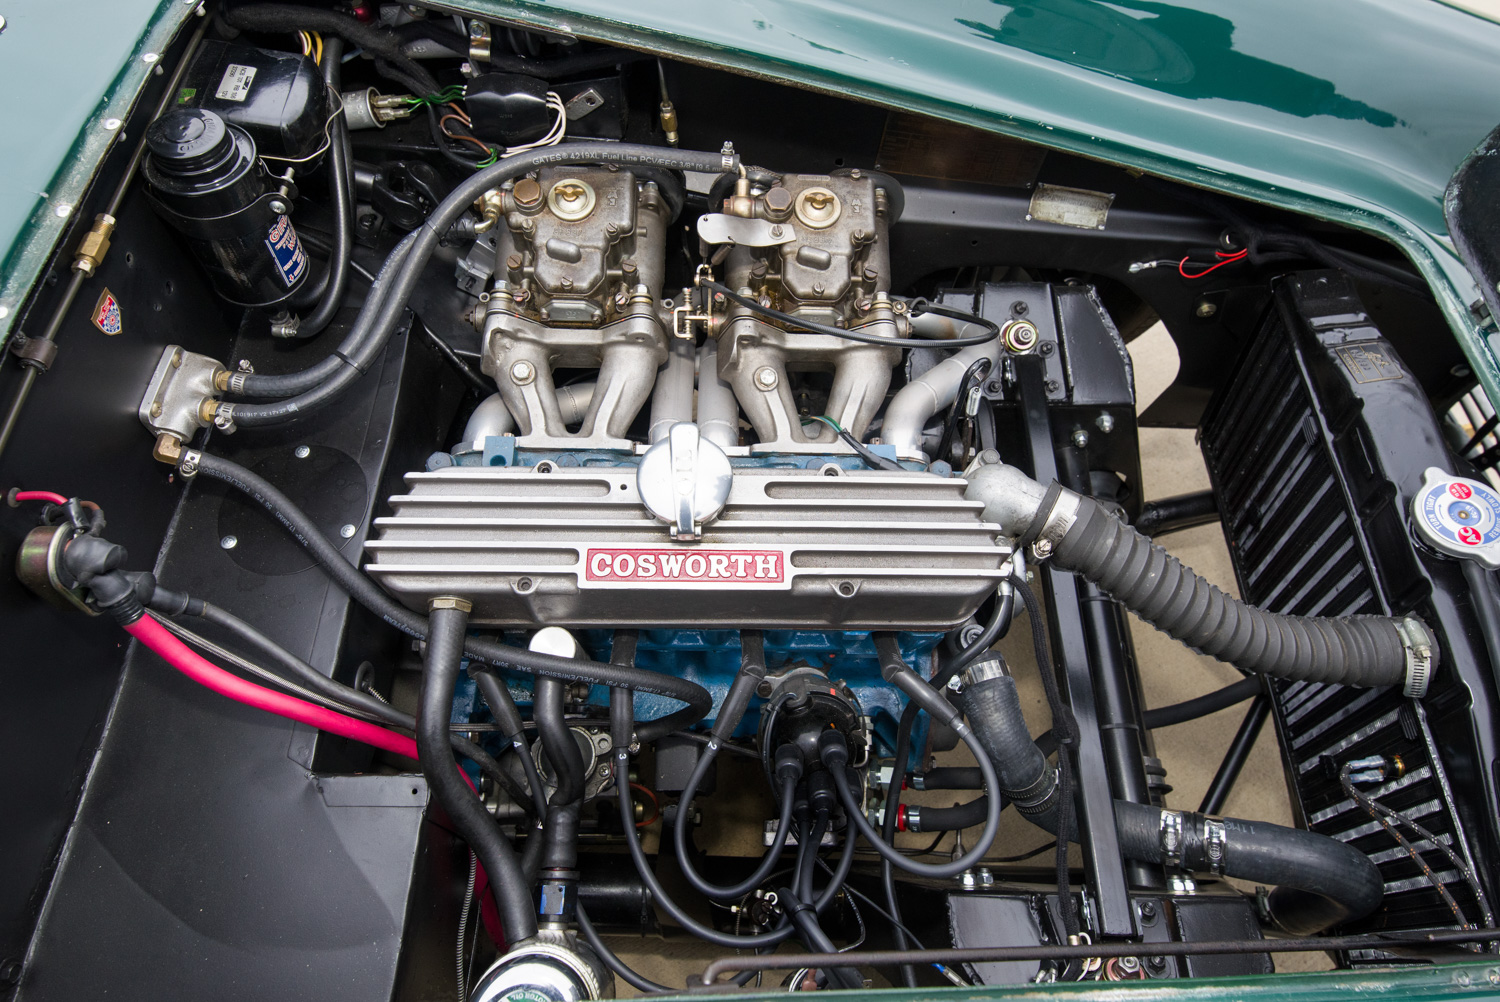 The Cosworth modified 1.5-liter Ford four-cylinder is fitted with dual Weber DCOE 40 carburetors. It was raced with these carbs in England. The dual Webers are not legal in U.S. SCCA amateur racing. Other Cosworth components include a modified crankshaft and camshaft, Lotus connecting rods and a considerable amount of cylinder head work. Output is approximately 160 horsepower.